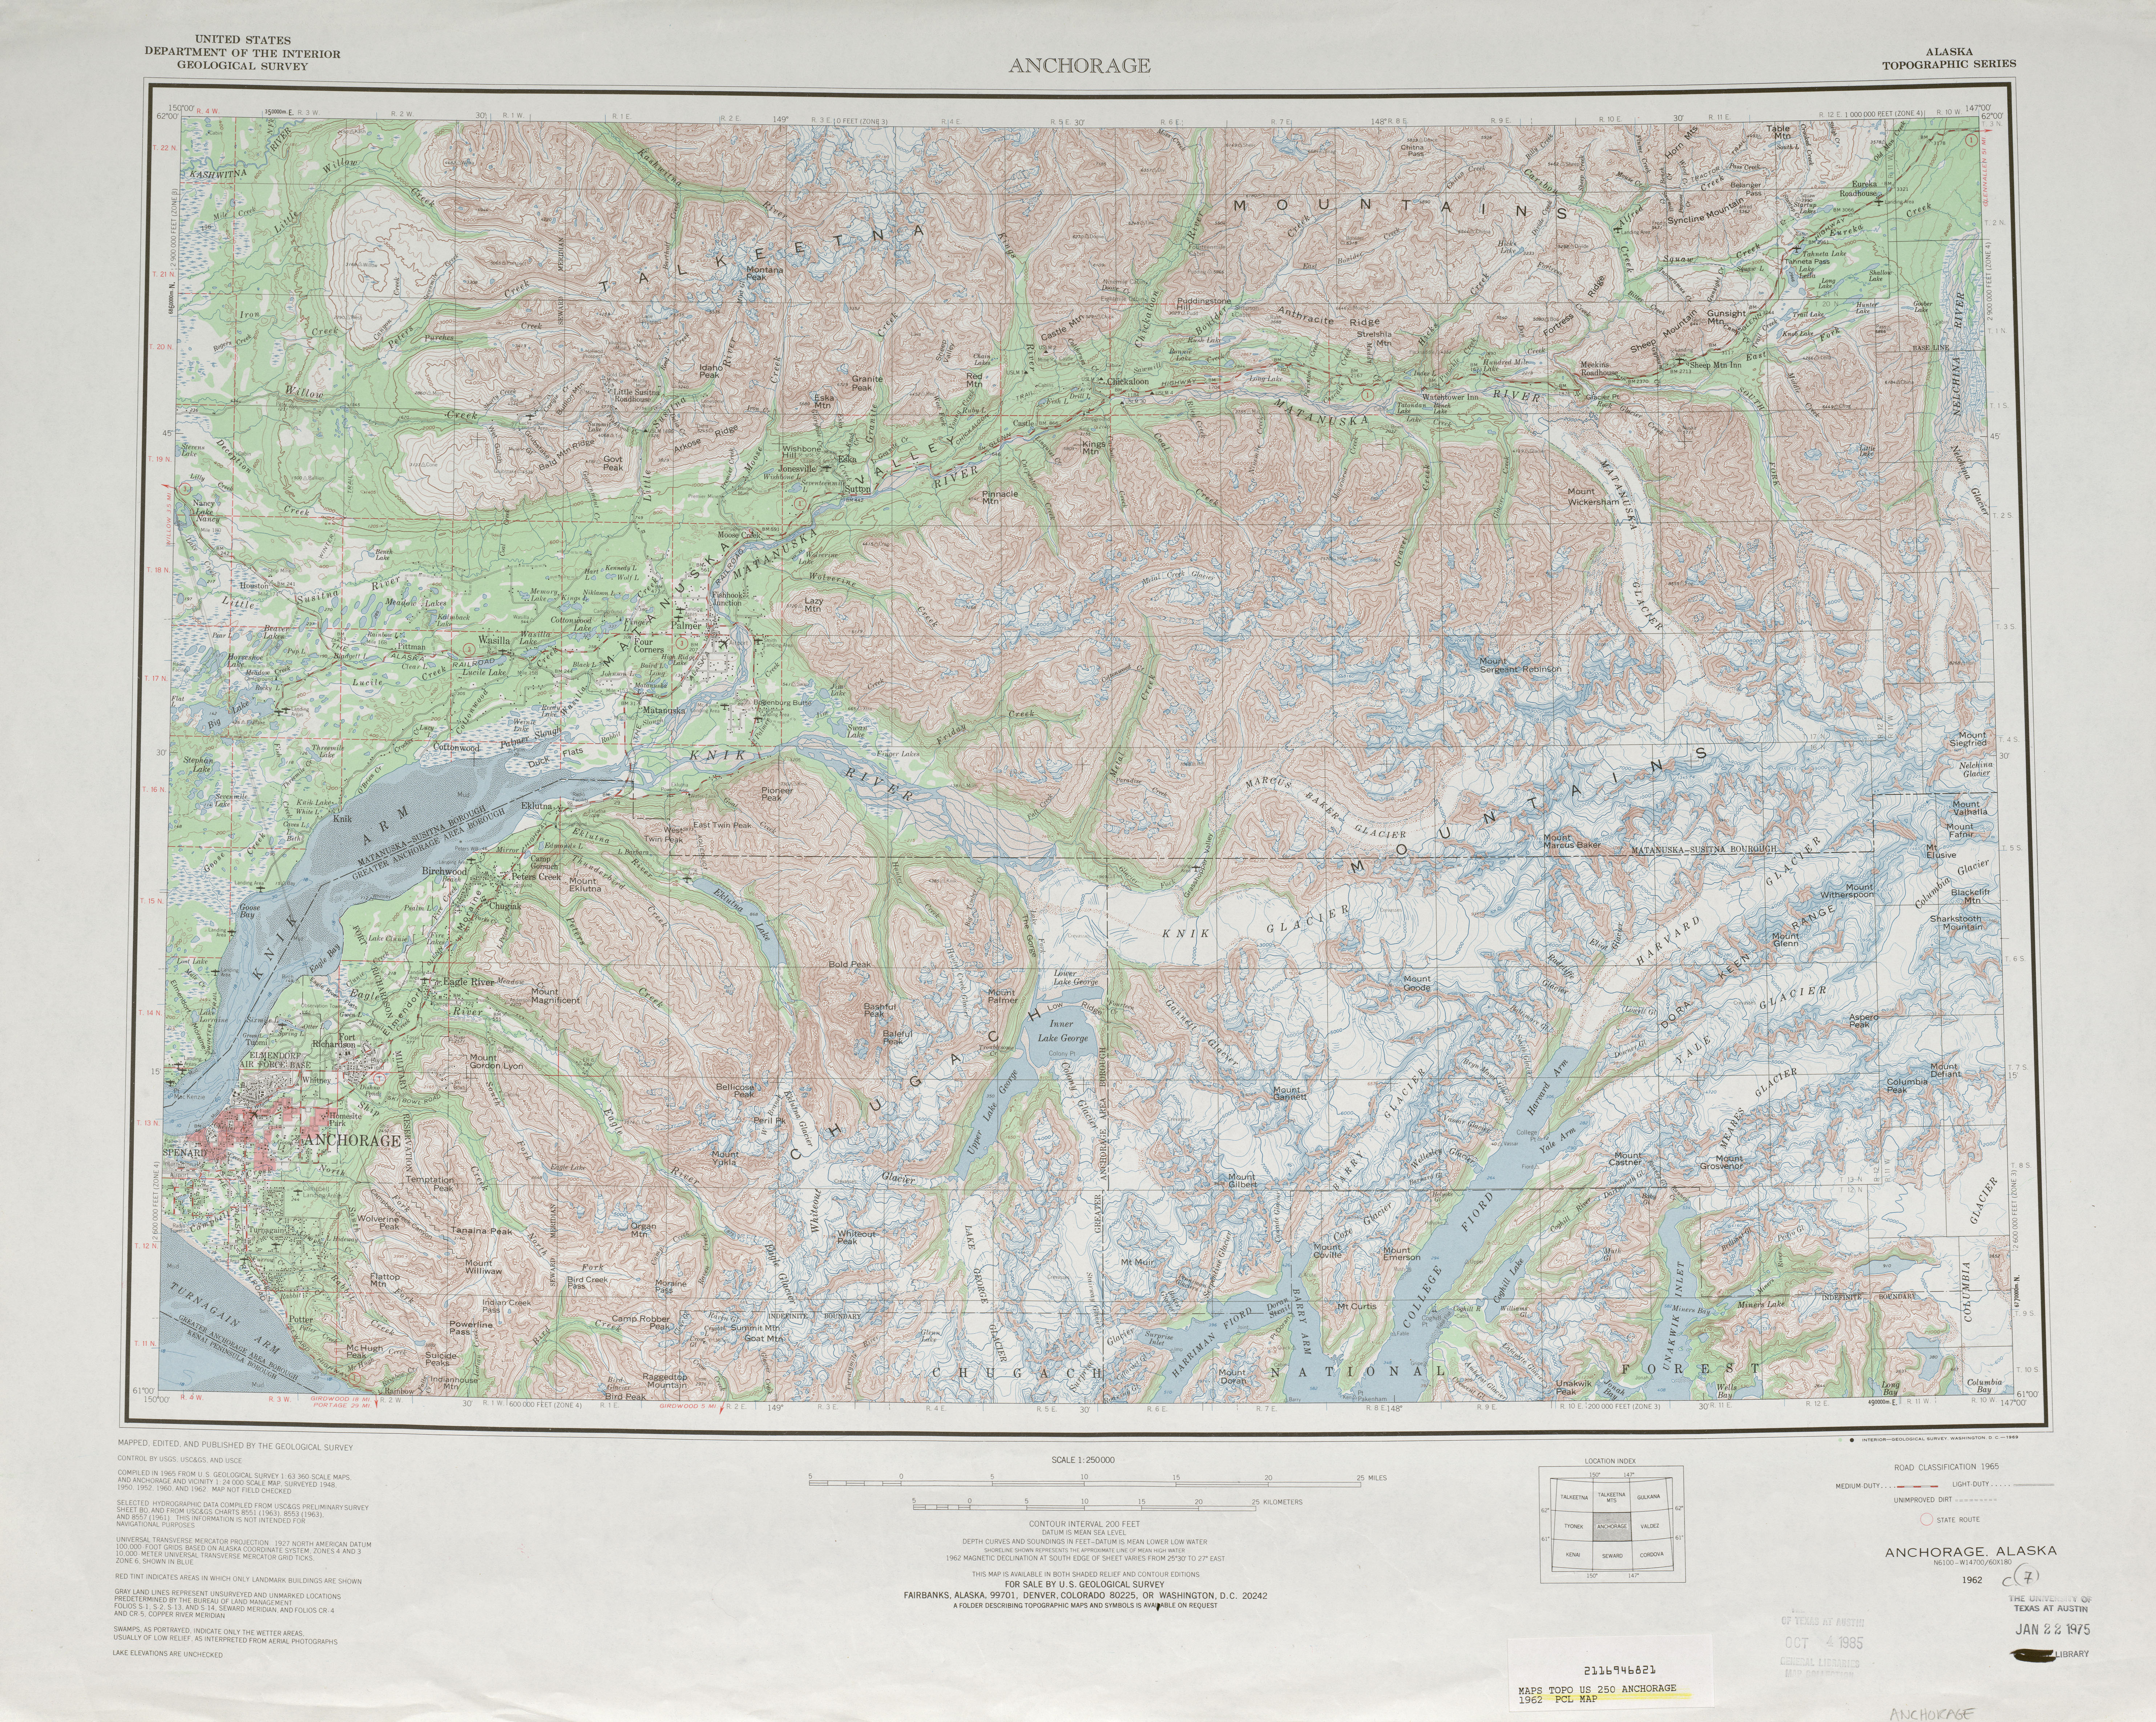 Anchorage Topographic Map Sheet, United States 1962